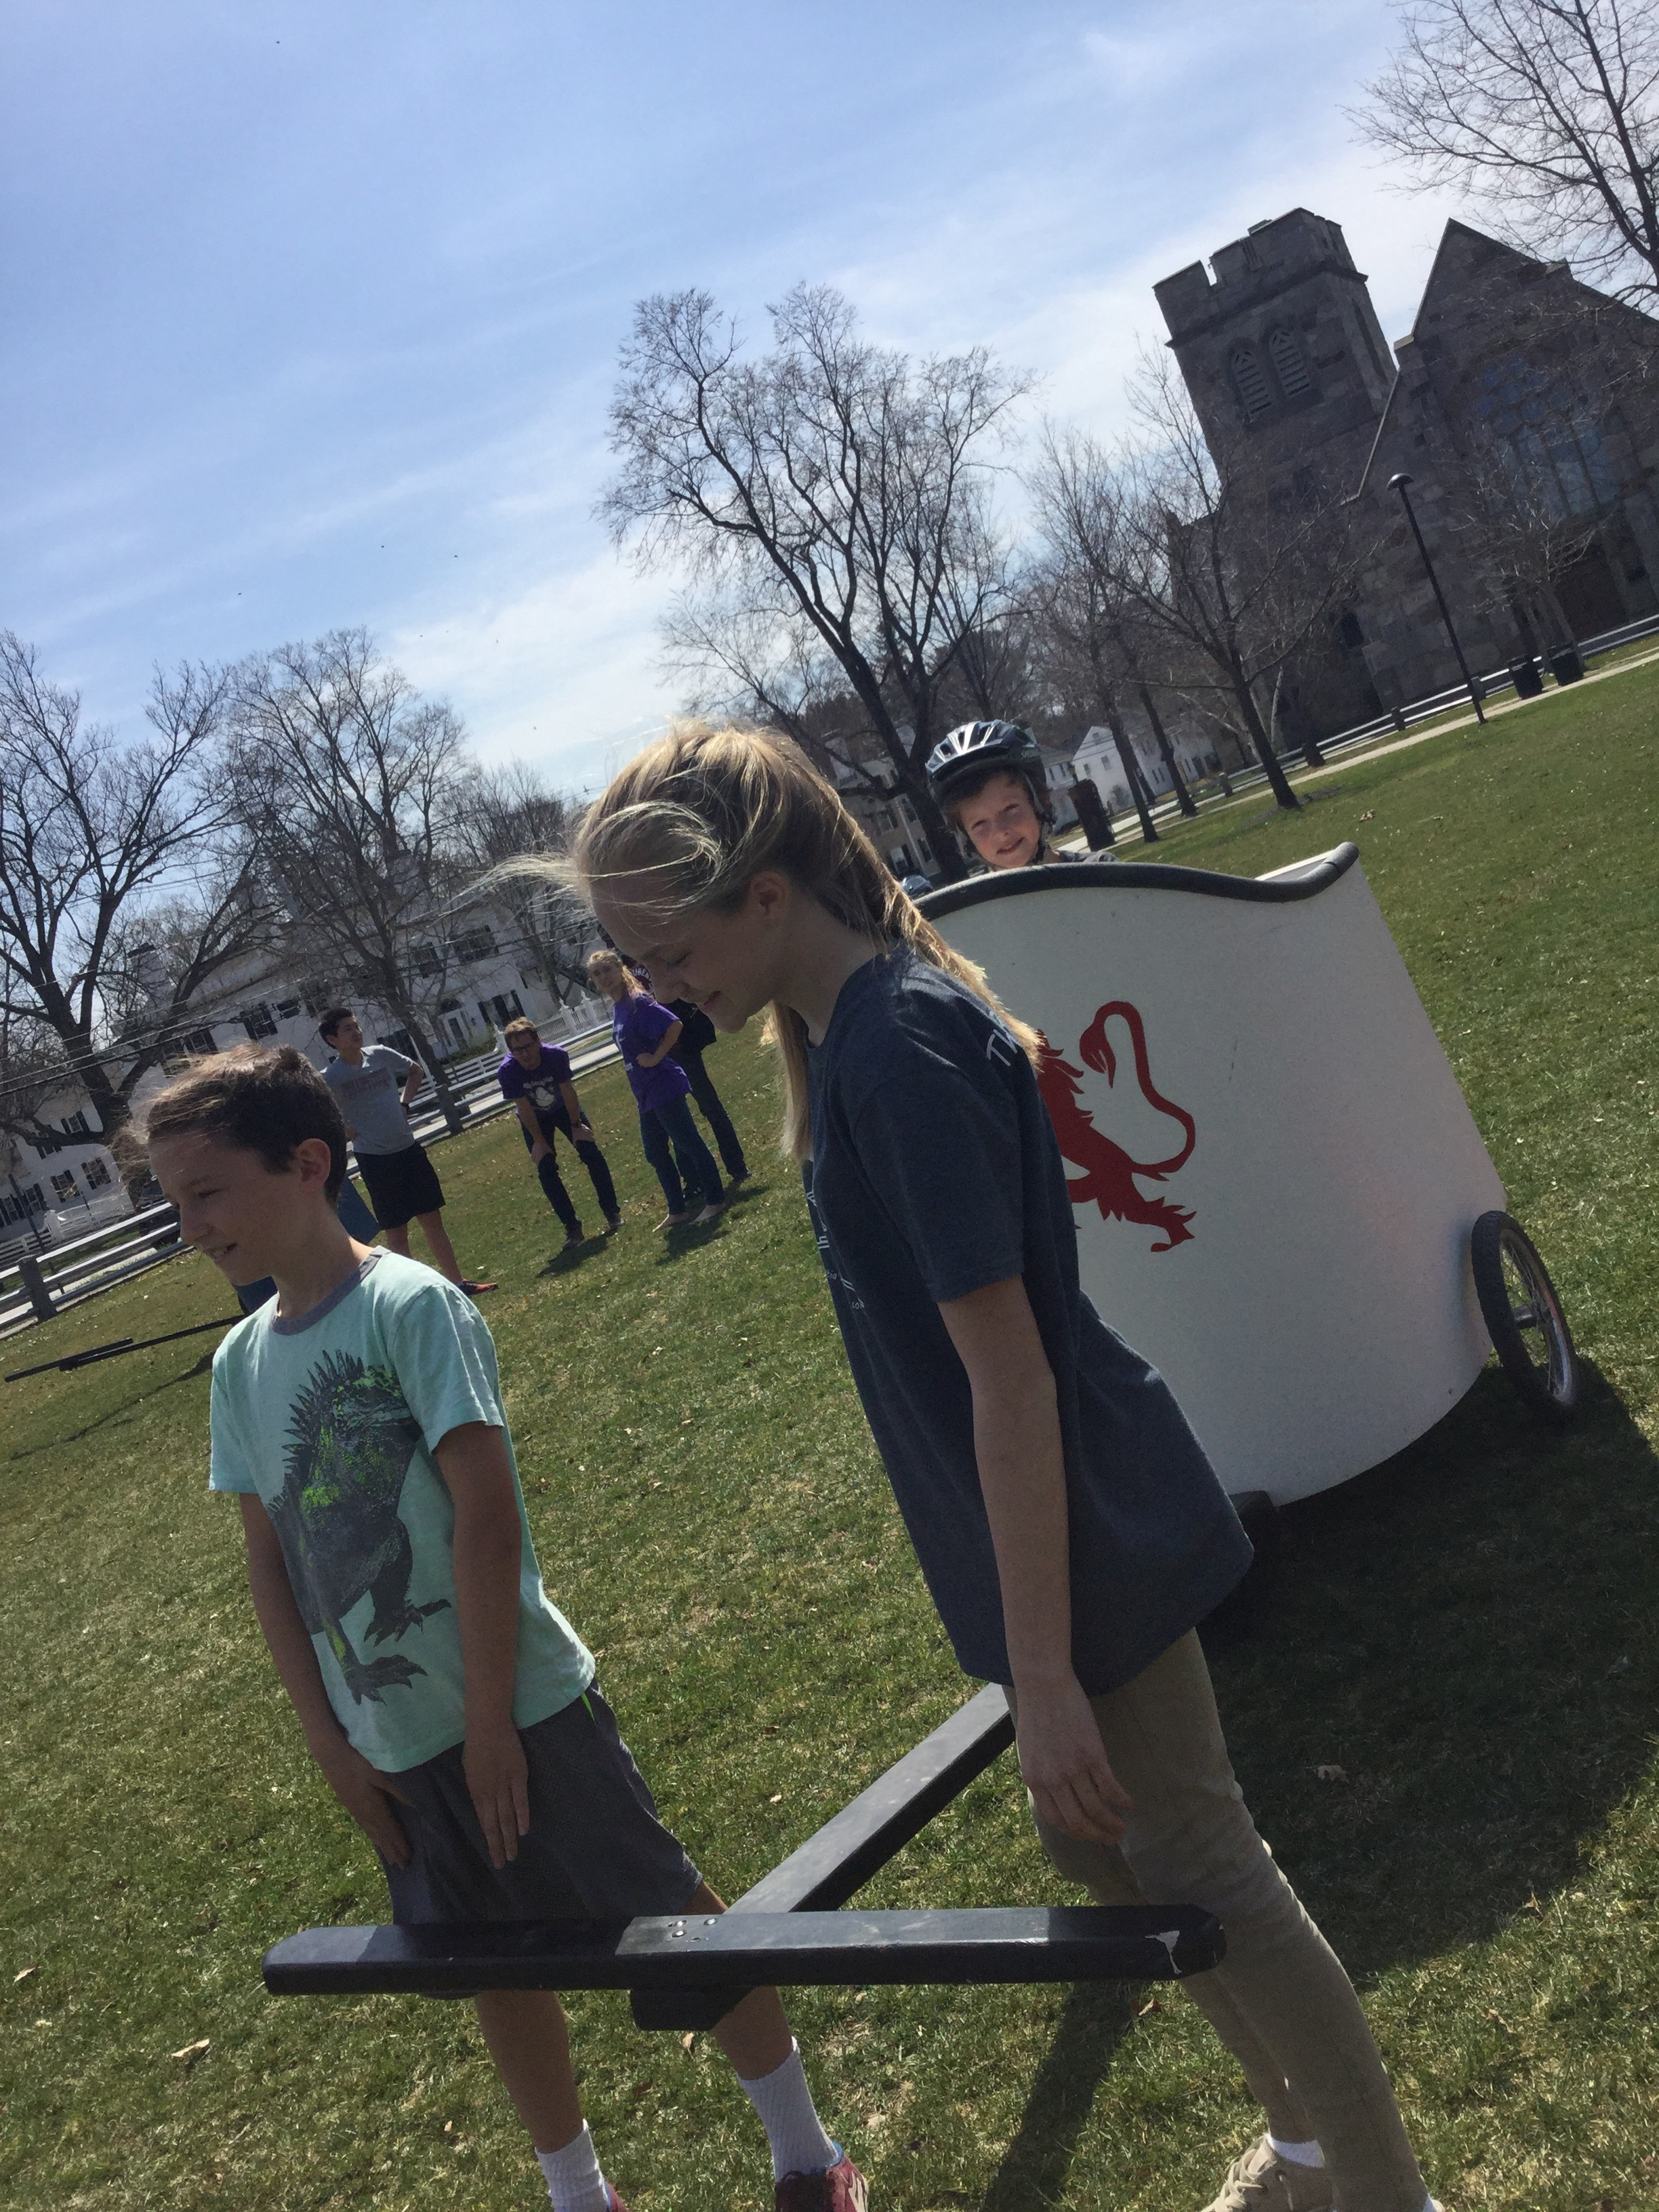 Henry Griffin from Danville and Katie Lyon from Waterford eagerly waiting to pull Liam Markey from Peacham in the chariot competition. Of which they went on to win their leg and compete in the finals.